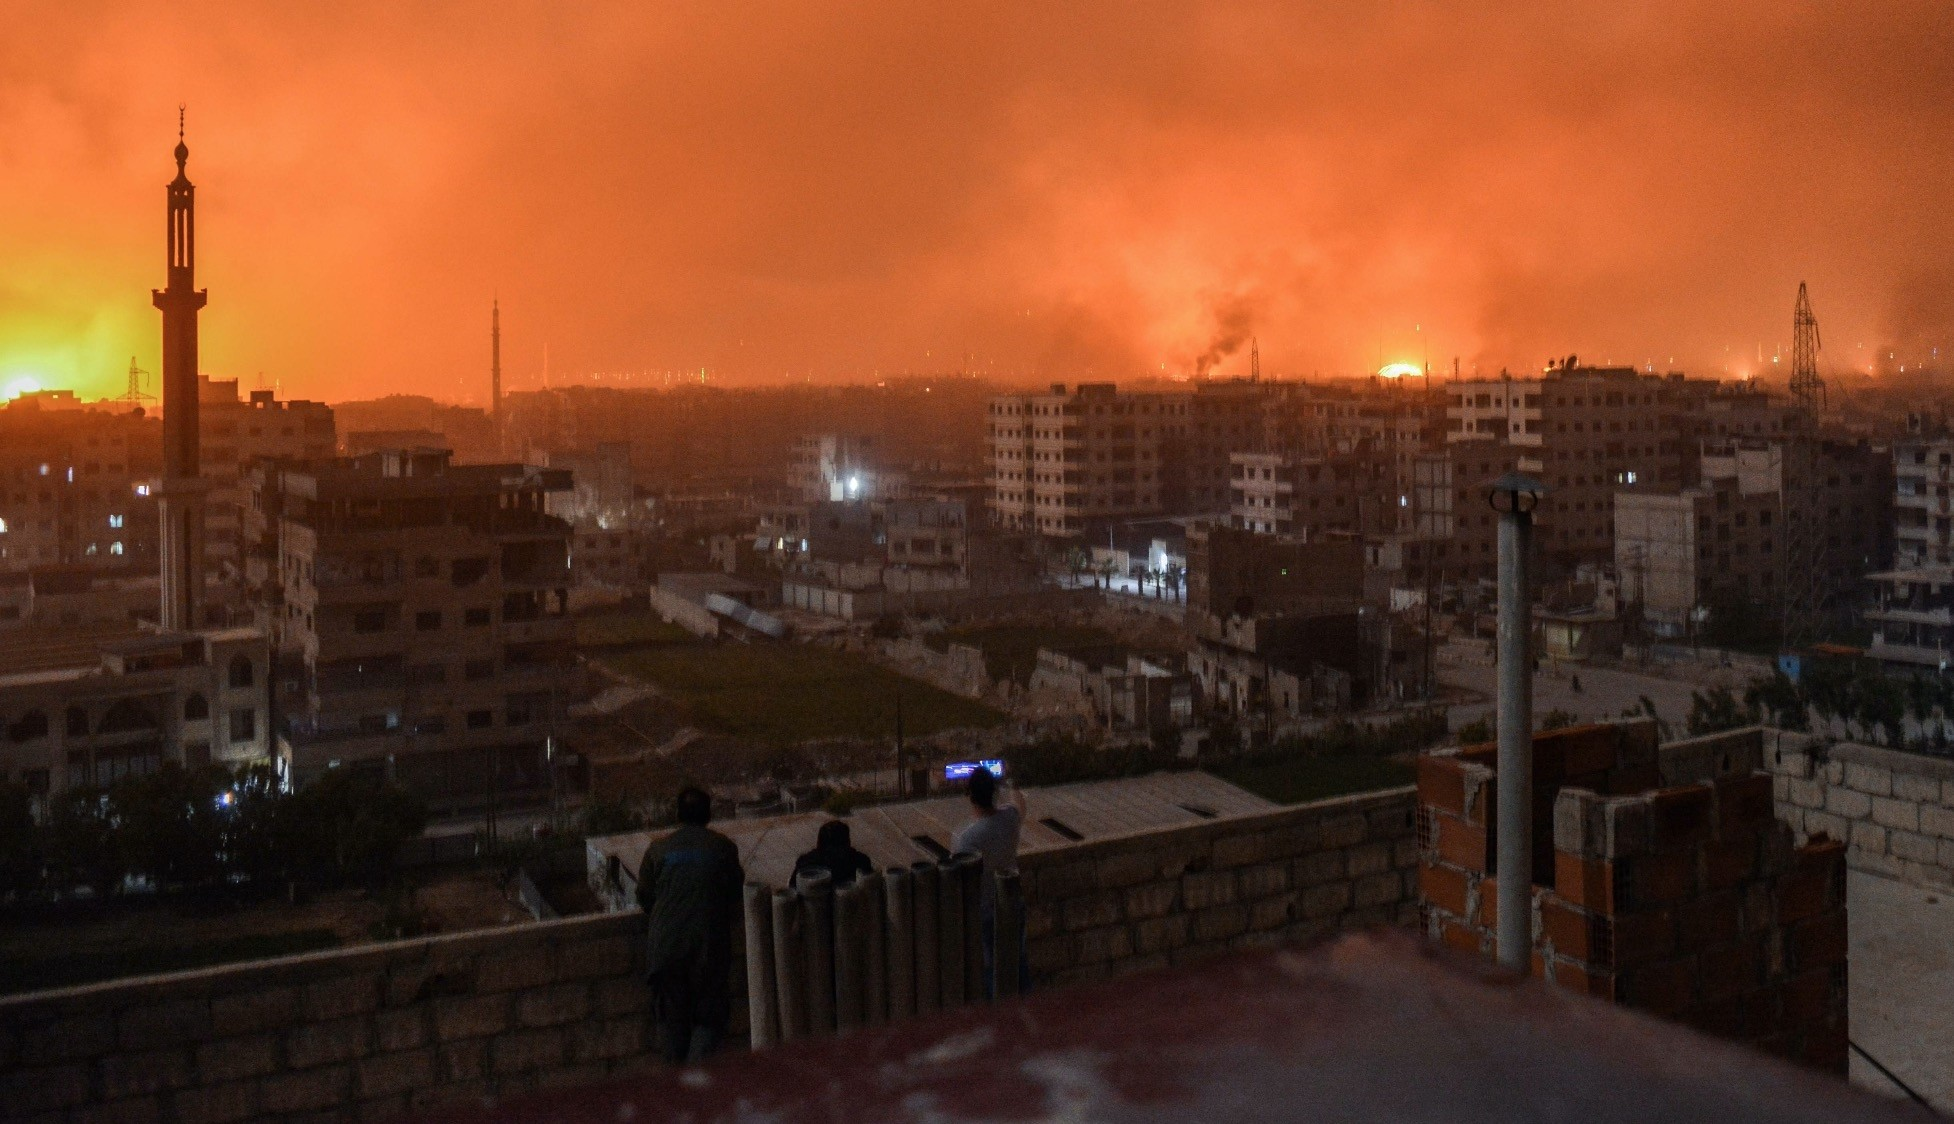 People stand on a roof to observe explosions on the horizon during regime strikes, in a southern district of the Syrian capital Damascus, April 28.